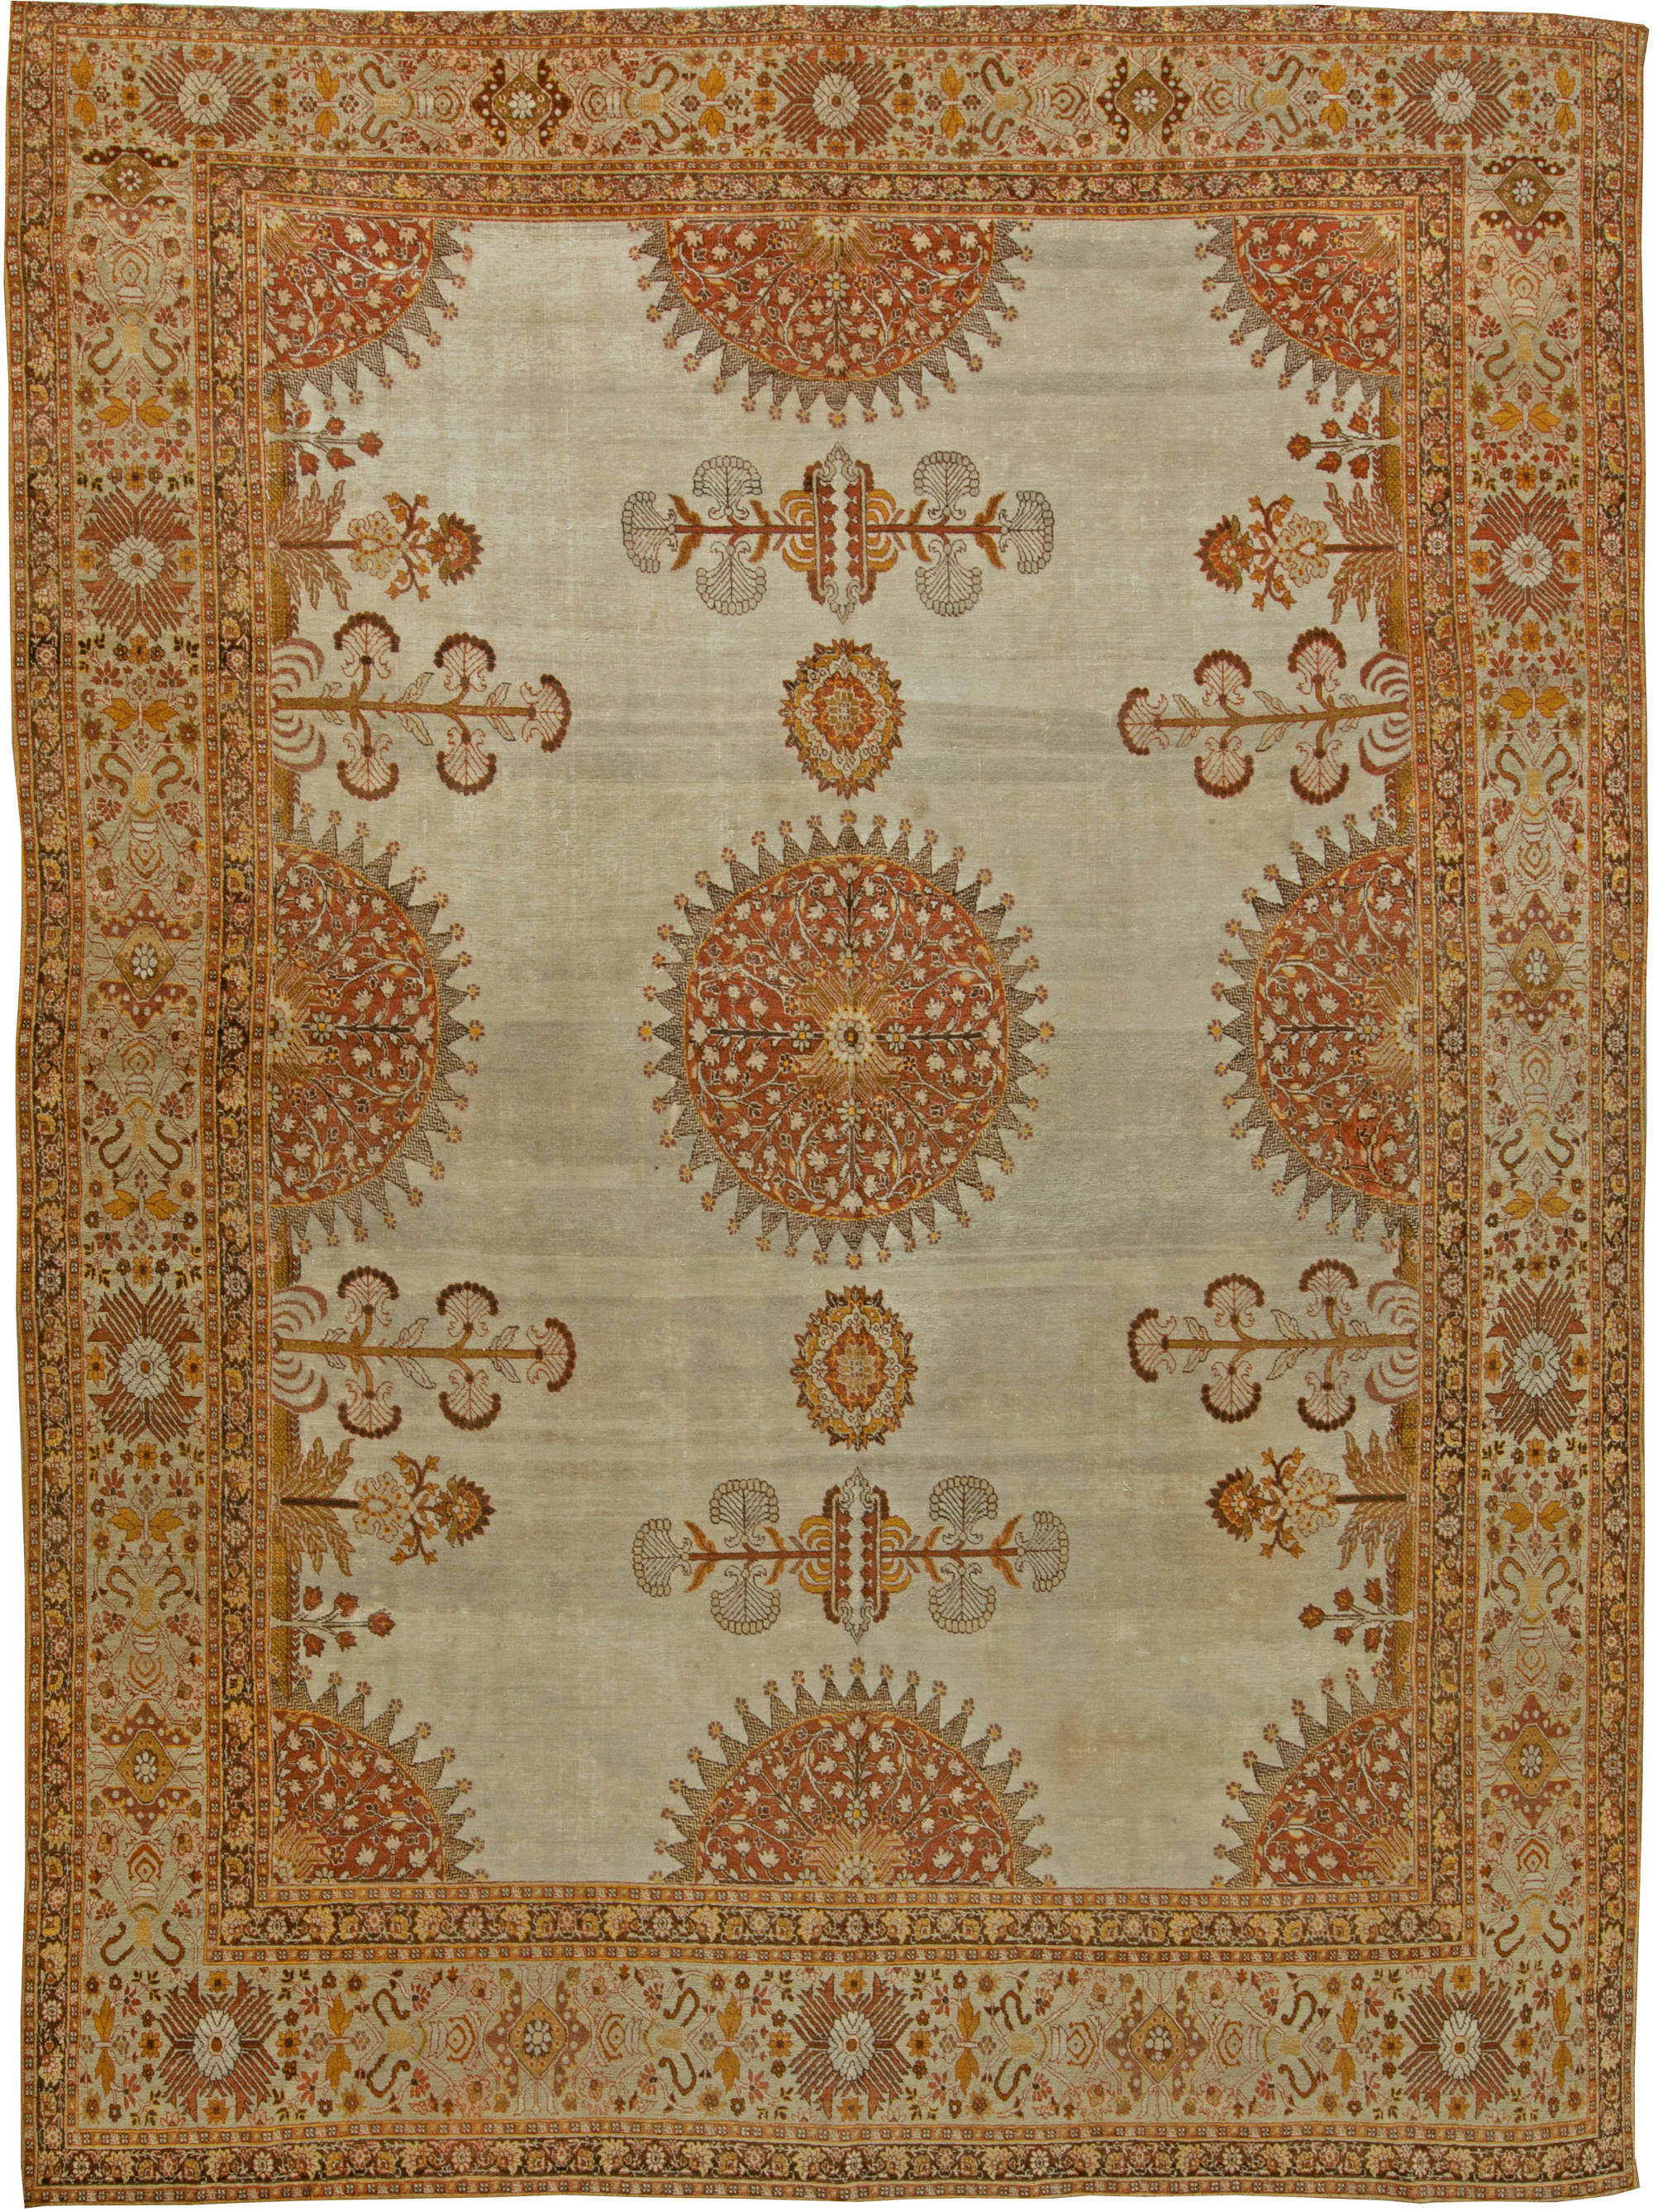 rug oriental sale carpet area persian approx claret large traditional rugs itm for style